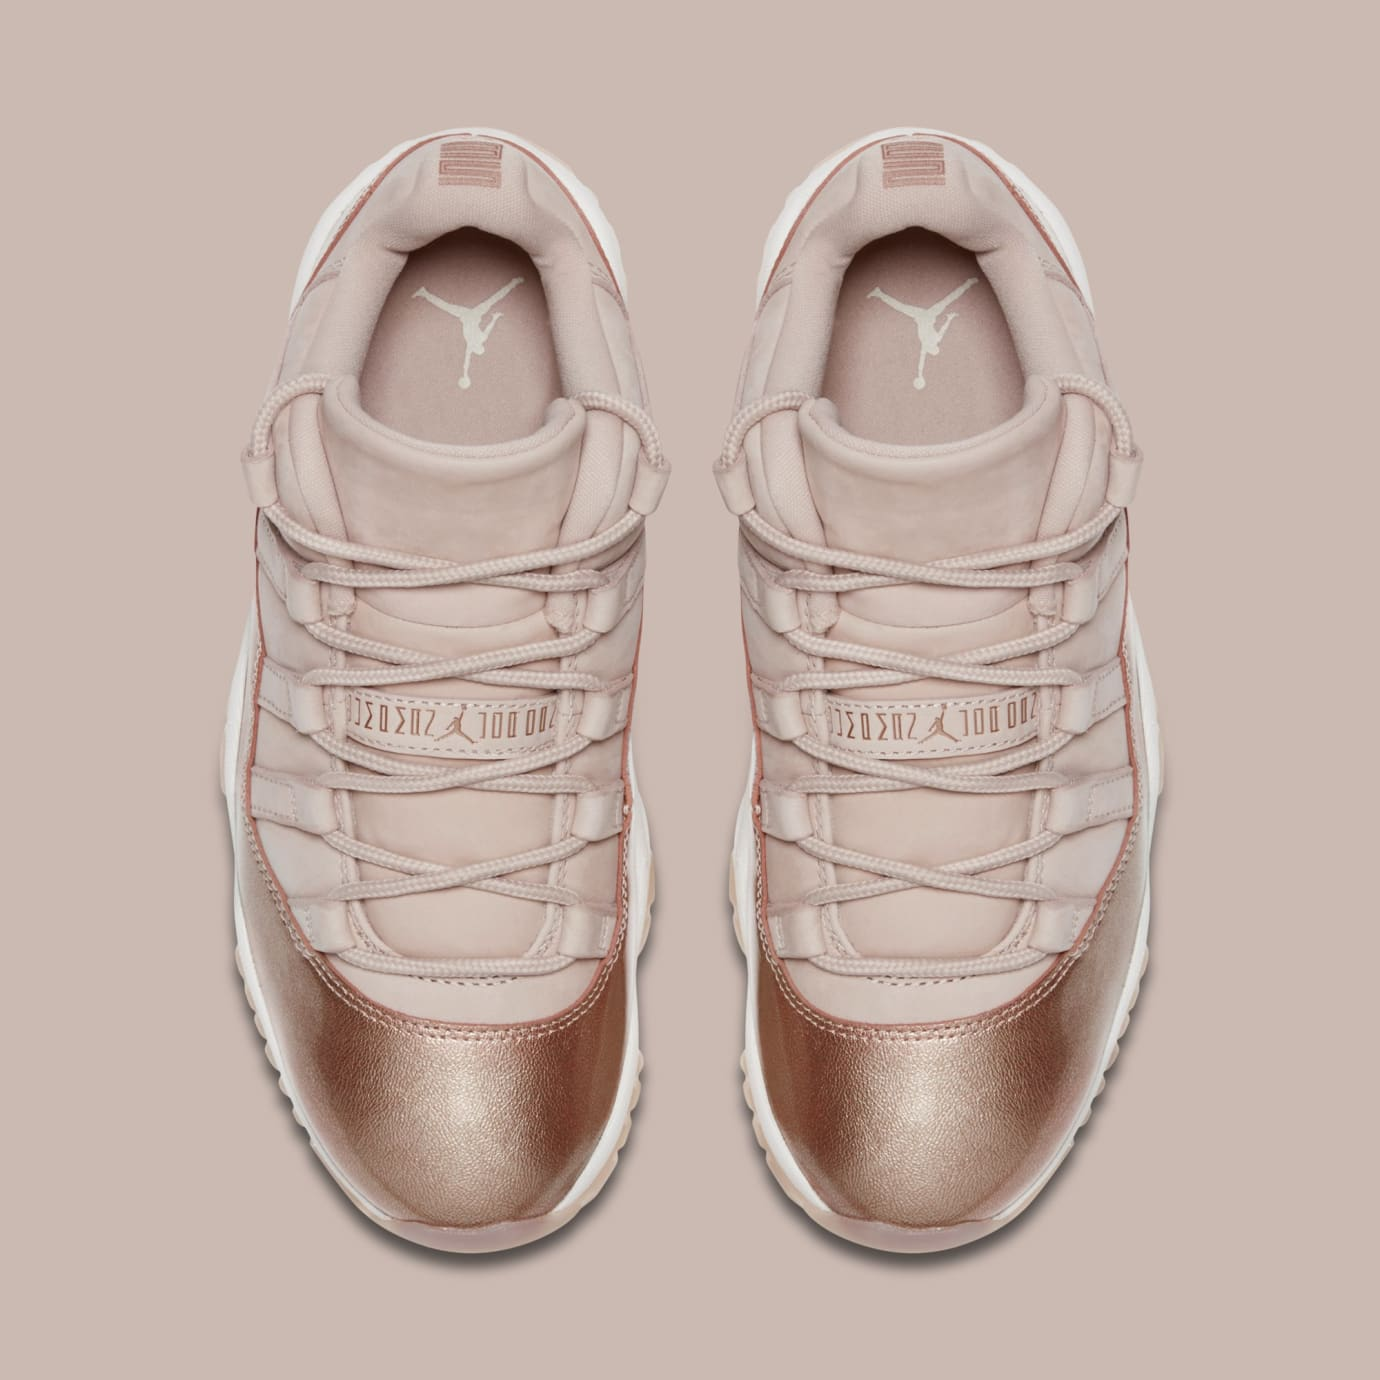 b8075c78e5d9 Image via Nike Air Jordan 11 Low  Rose Gold  AH7860-105 (Top)